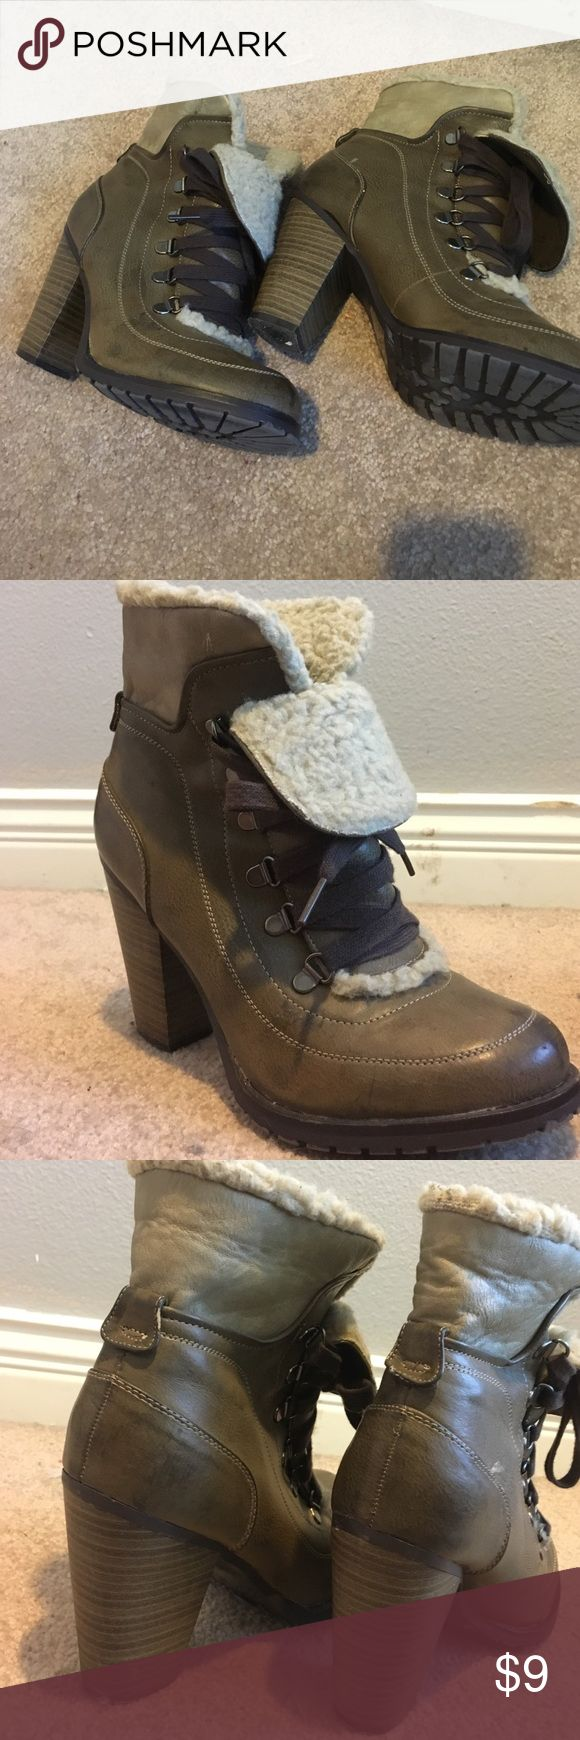 """50% off bundles Super cute ankle booties 2"""" heel lace up. Gently loved size 9 but fits more like 8 1/2 Moving sale everything must go I will accept 50% of bundles of 5+ items and any offers made. Closet will be closed April 1st or sooner! Not listed brand Free People Shoes Ankle Boots & Booties"""